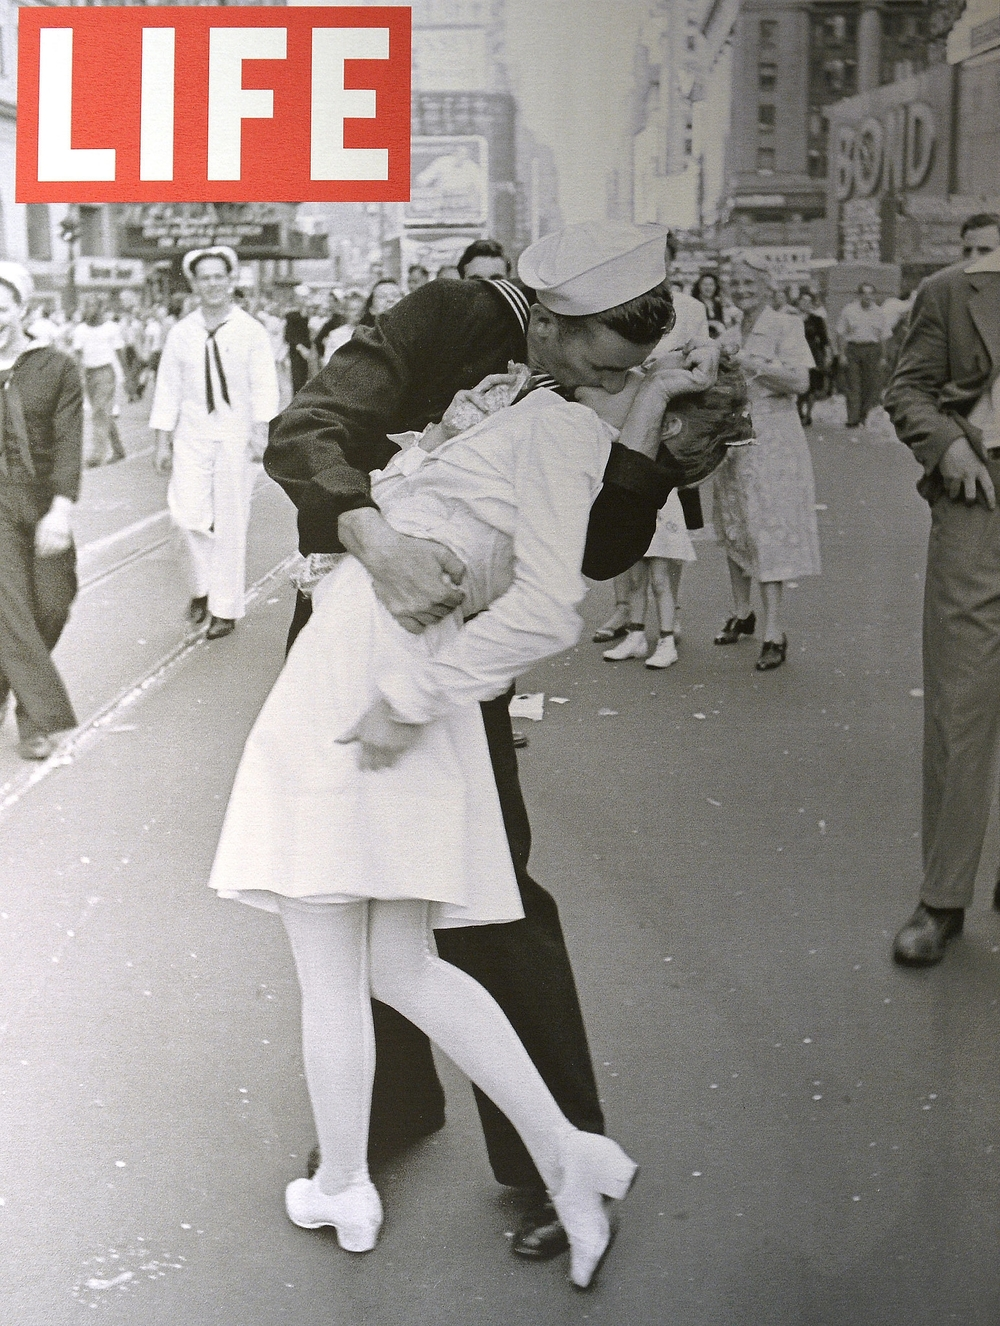 LIFE magazine cover (Copyright-Alfred Eisenstaedt/Life Magazine)